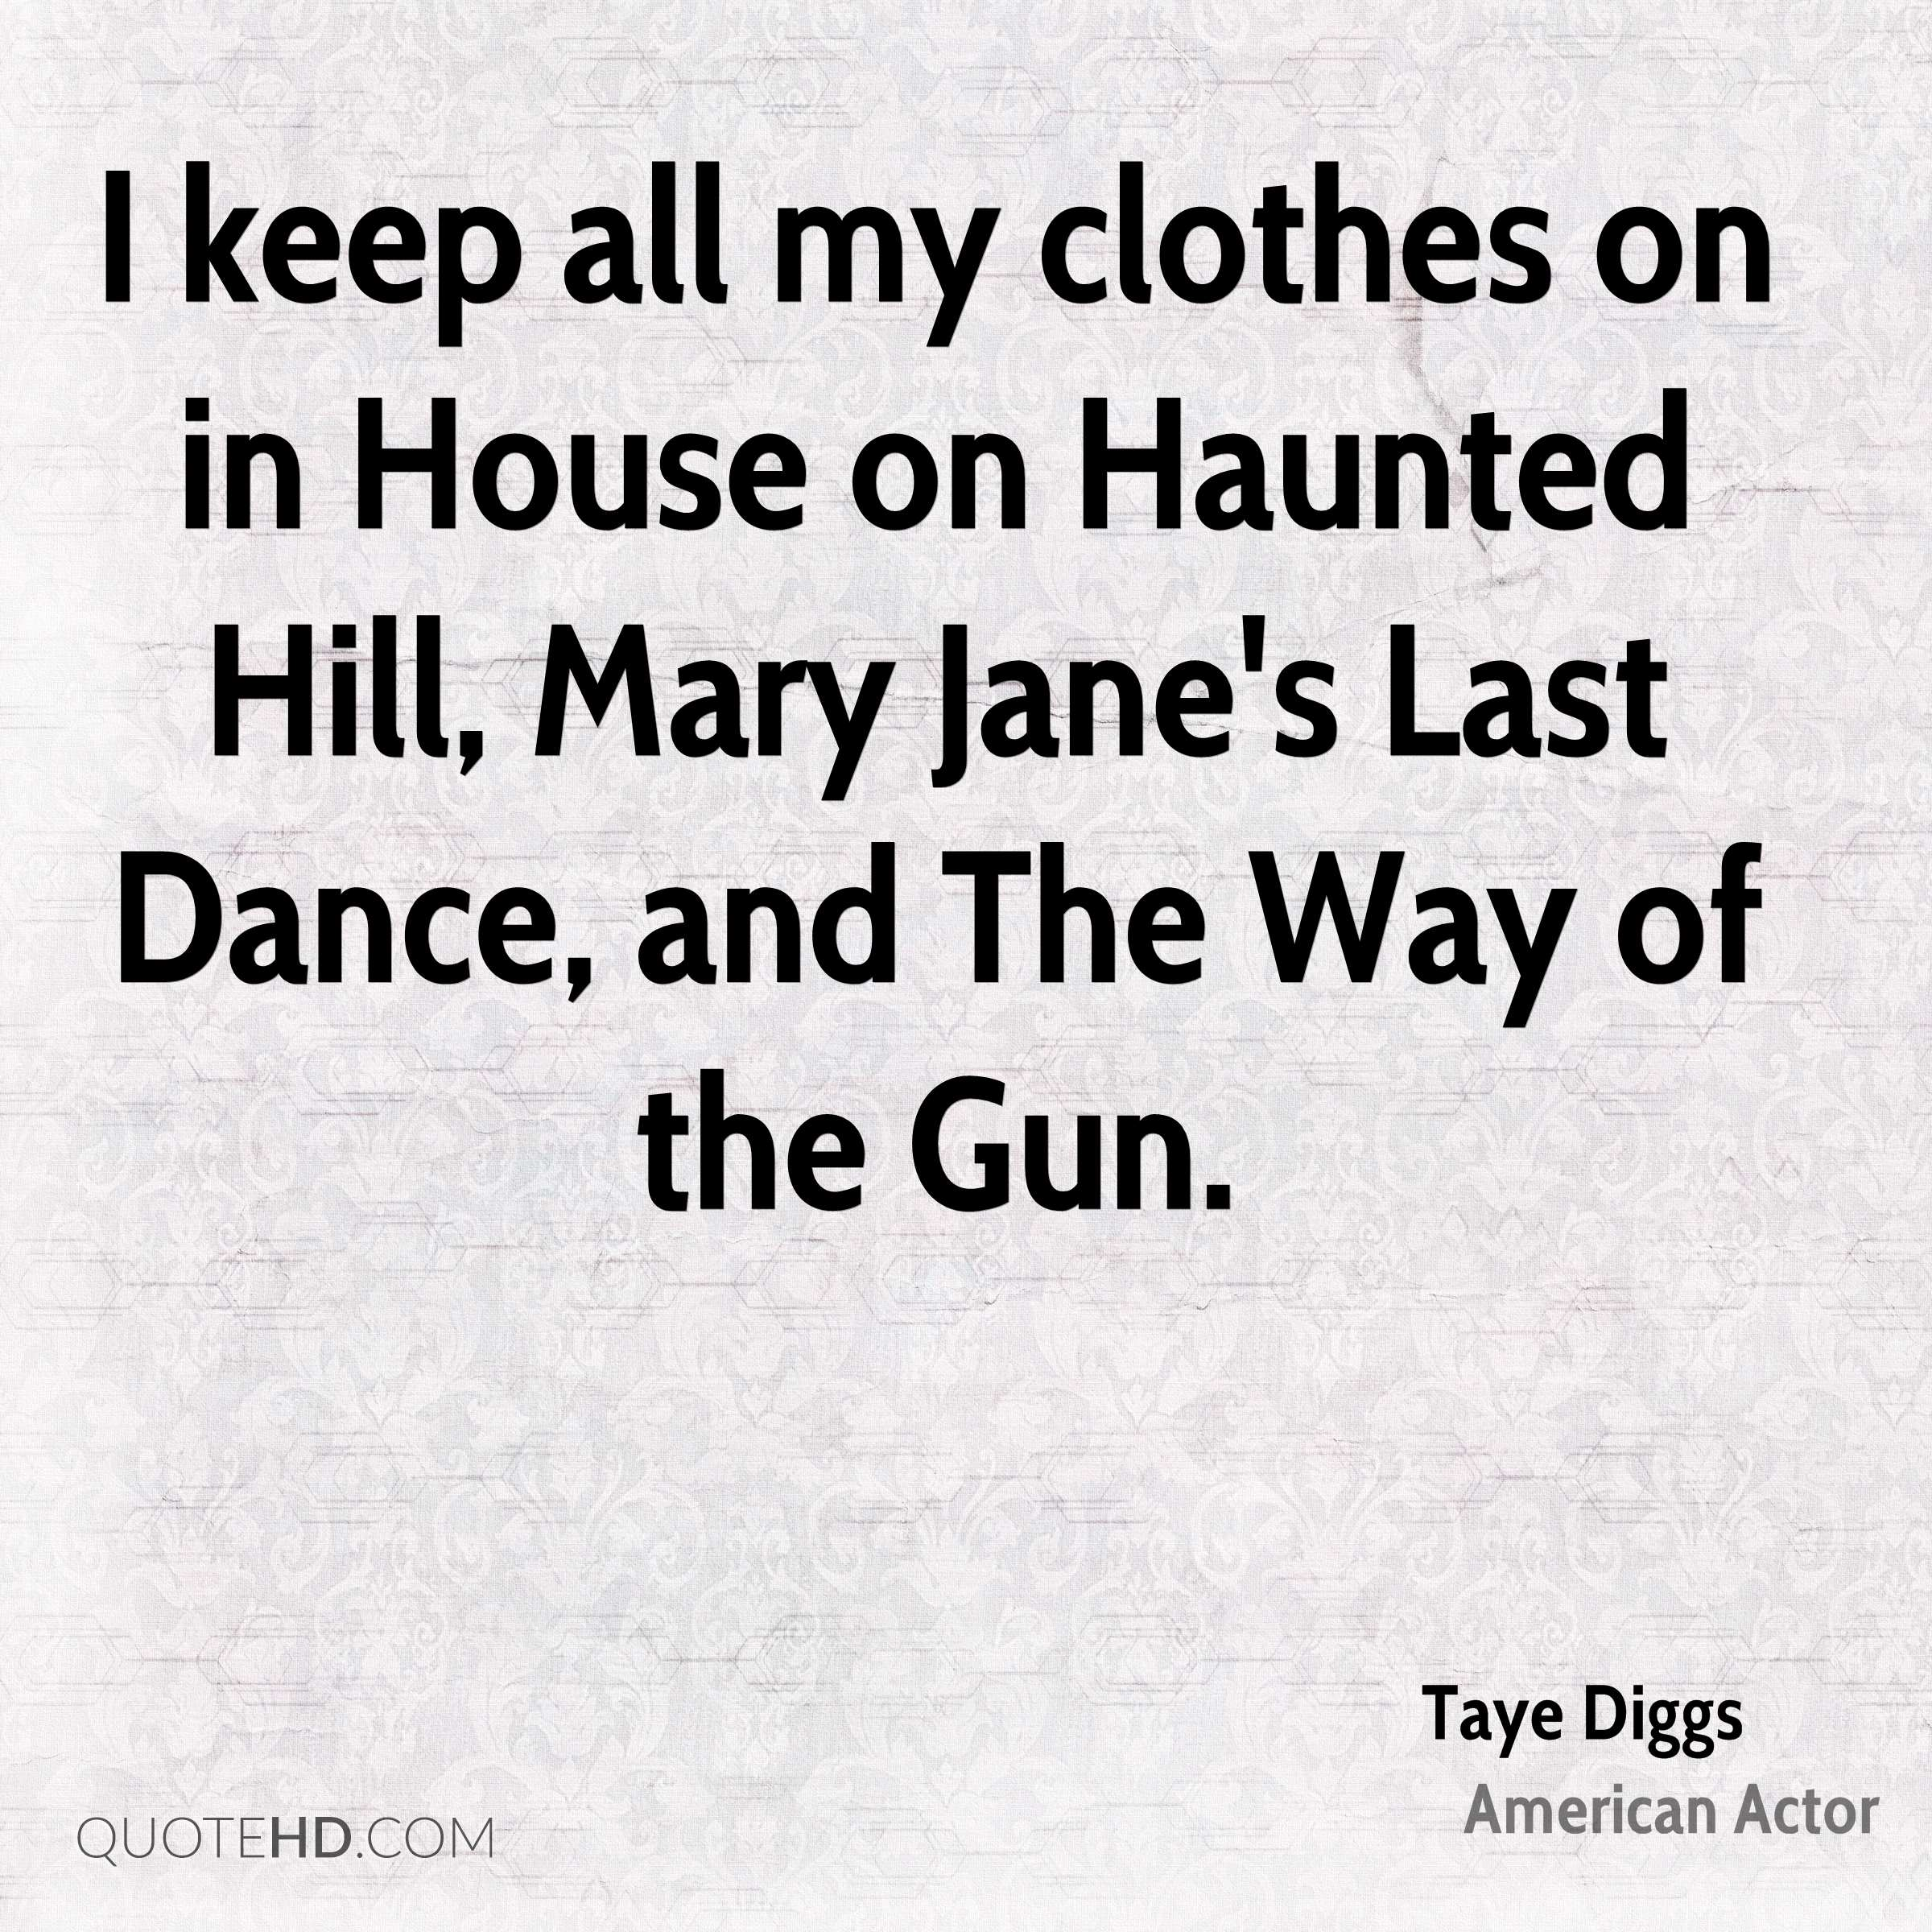 I keep all my clothes on in House on Haunted Hill, Mary Jane's Last Dance, and The Way of the Gun.